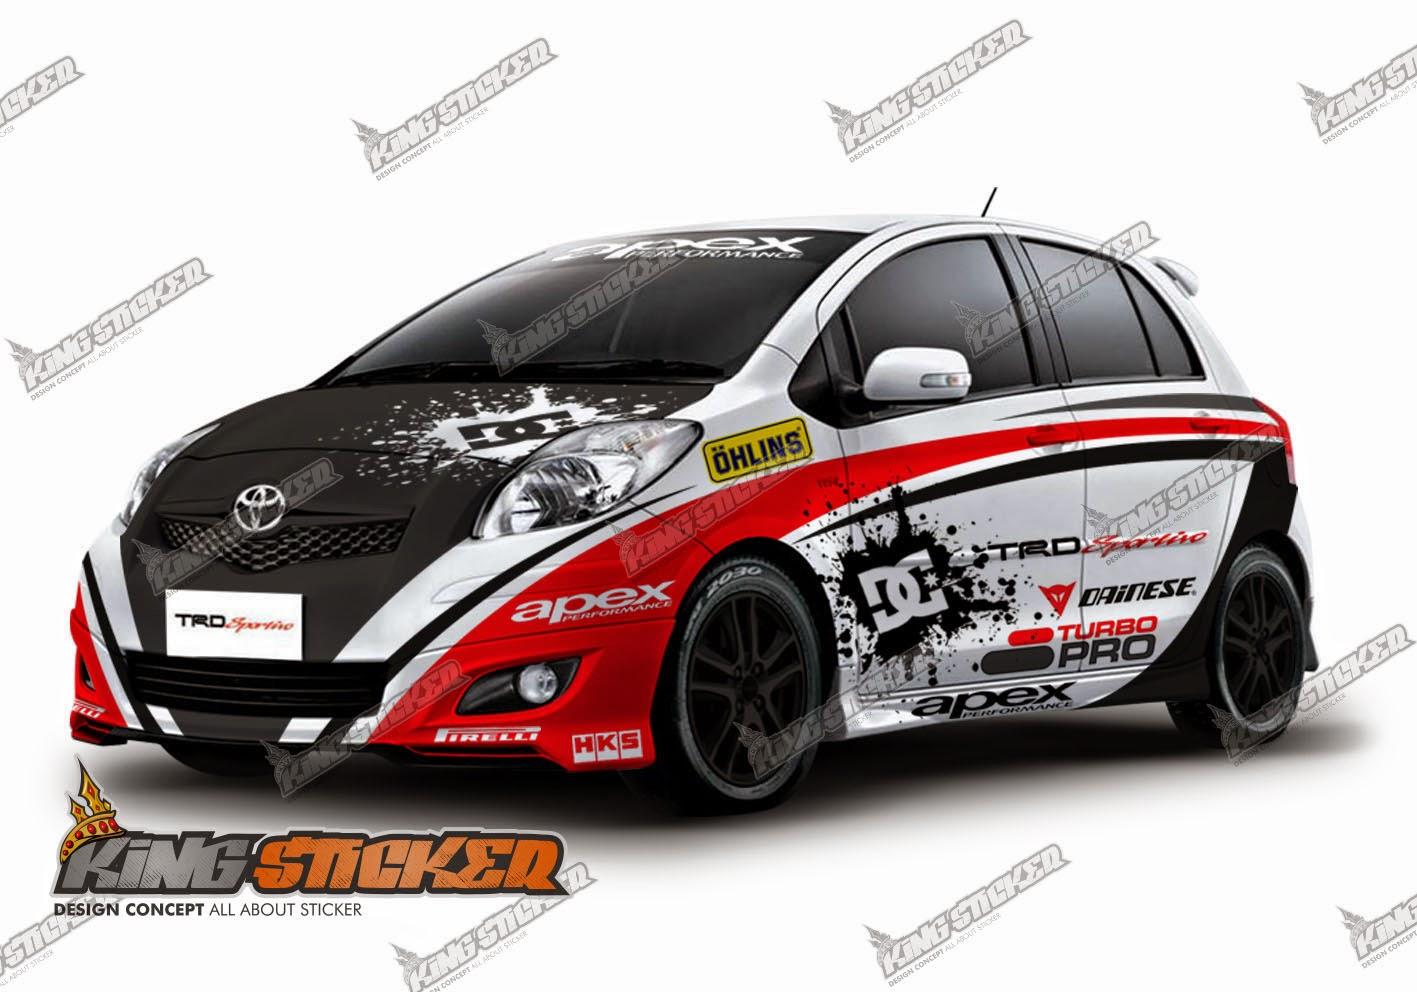 Stiker Modifikasi Mobil >> Design Cutting Sticker Mobil | Joy Studio Design Gallery - Best Design